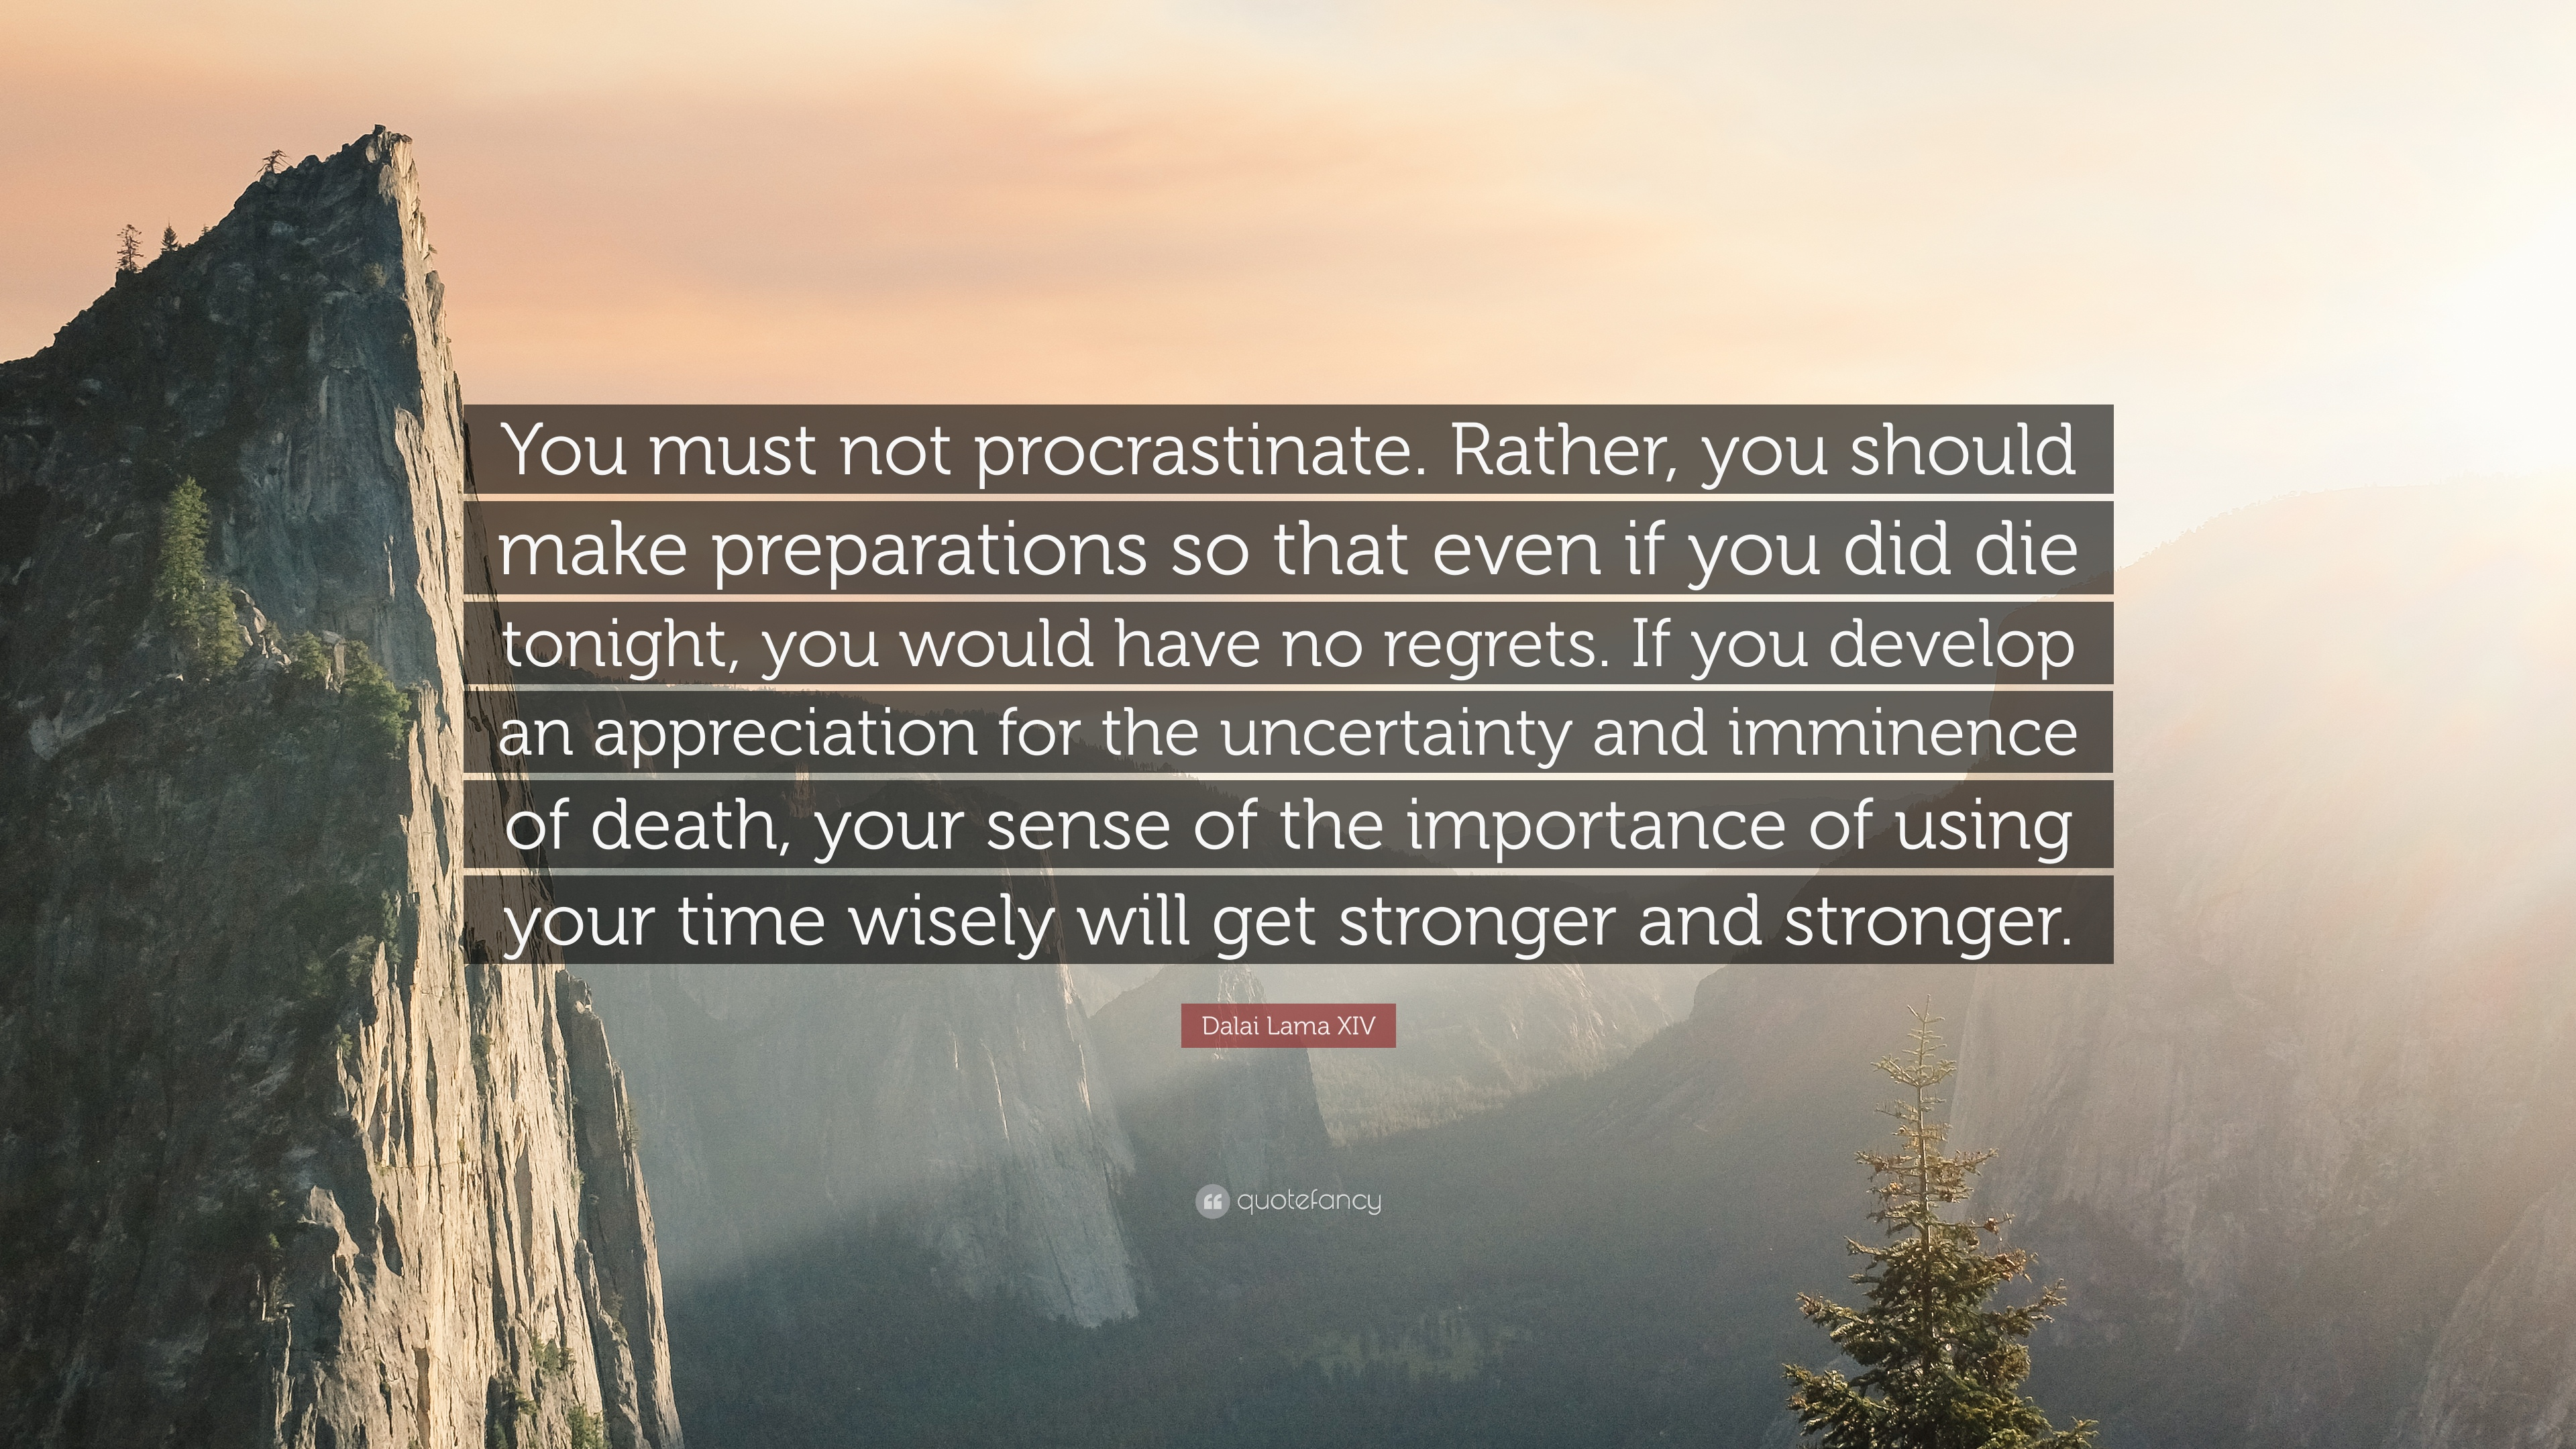 Dalai Lama Xiv Quote You Must Not Procrastinate Rather You